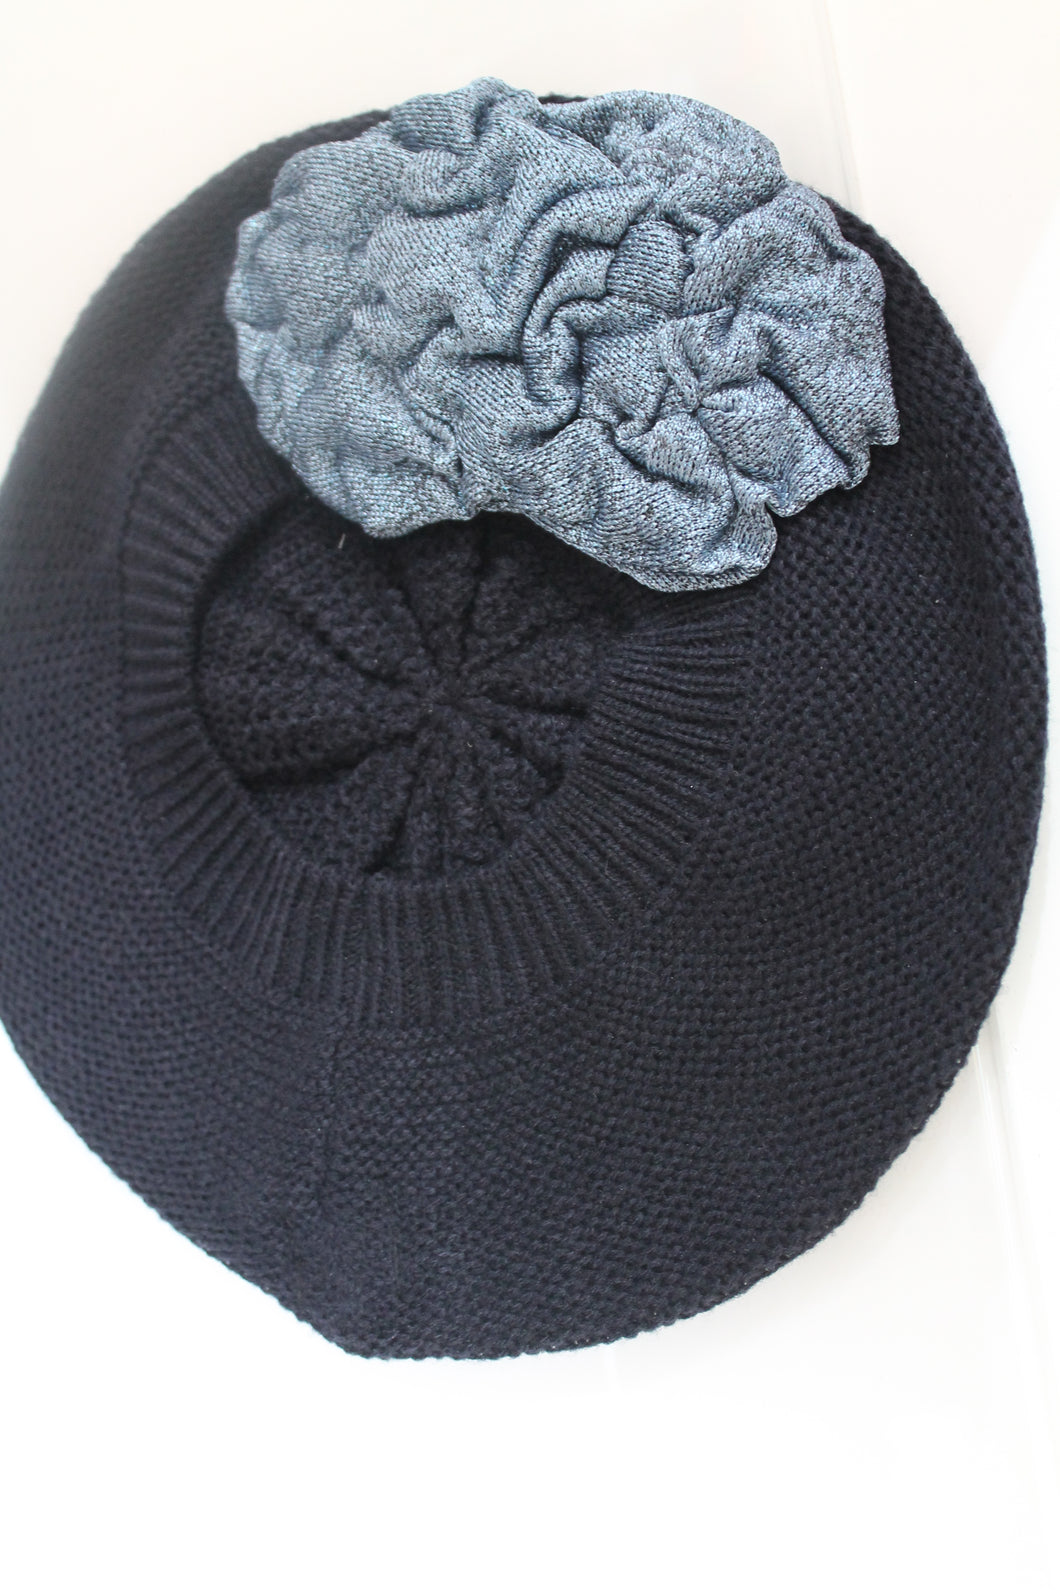 Navy Beret with Blue Shiny Flower